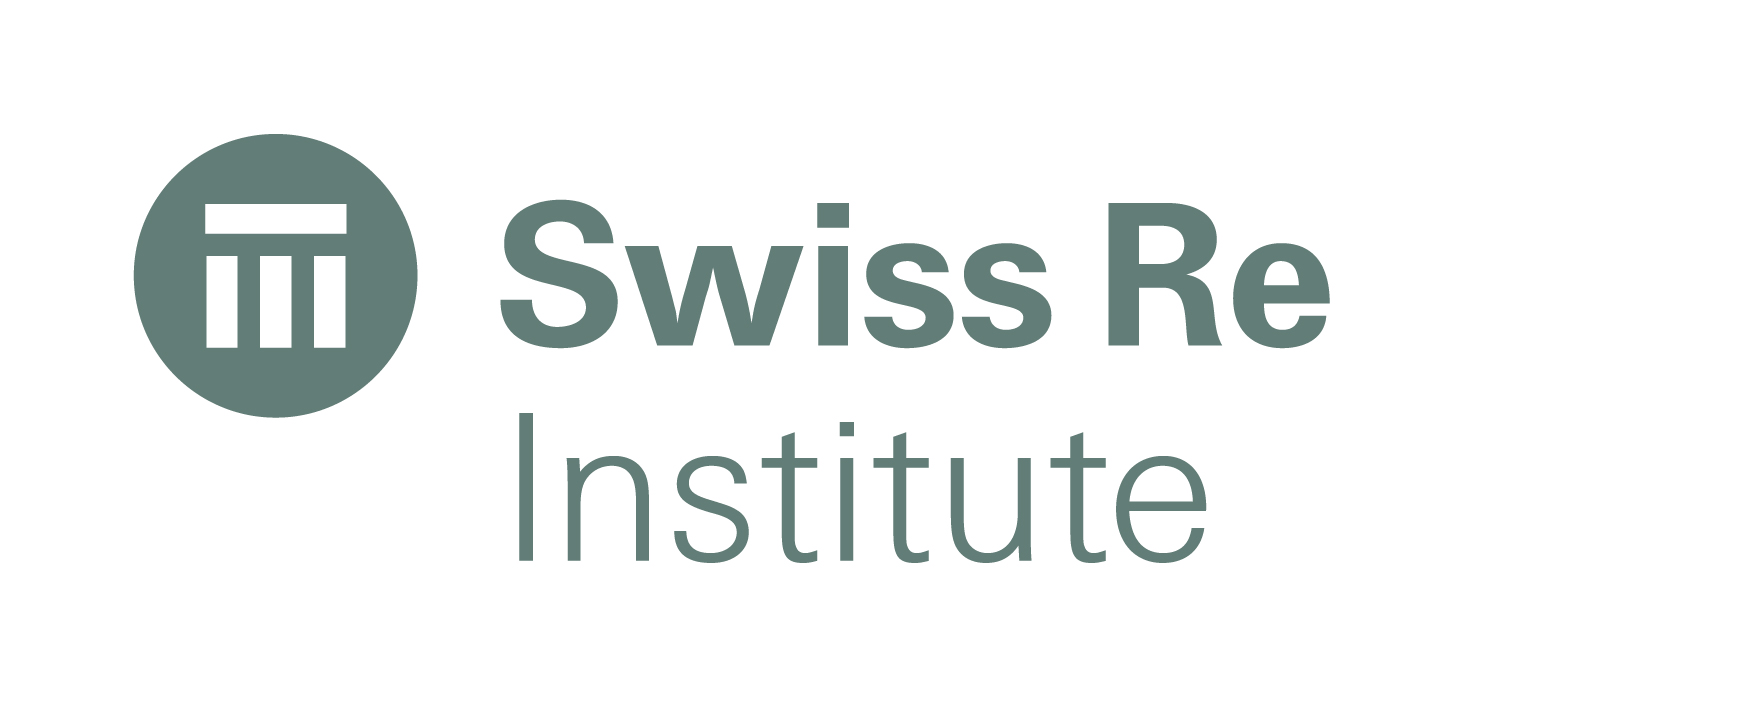 Swiss Re Institute